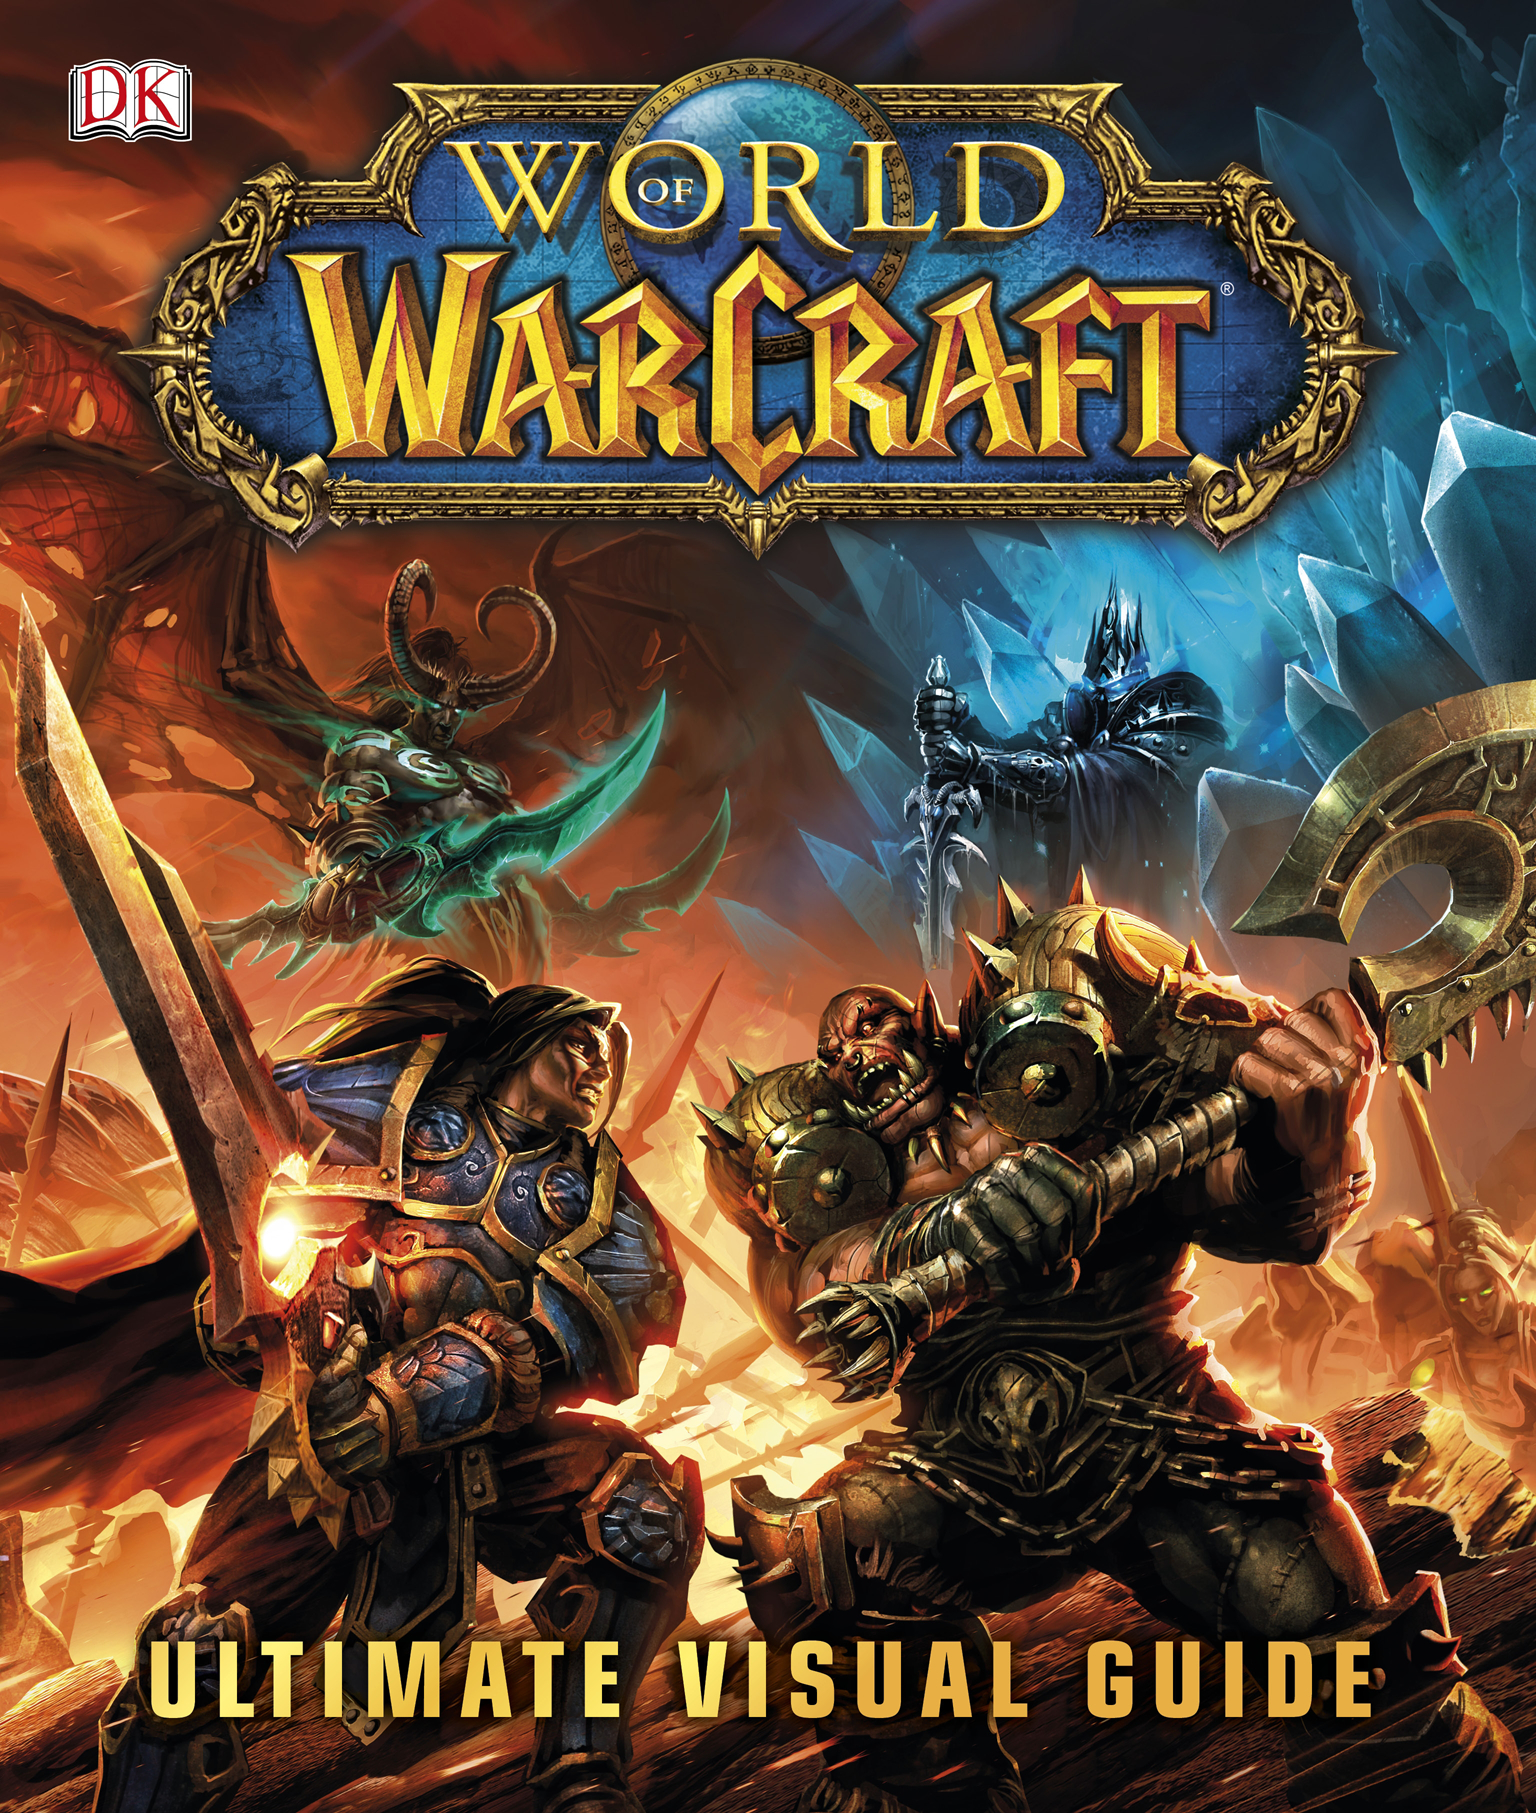 WORLD OF WARCRAFT ULTIMATE VISUAL GUIDE HC